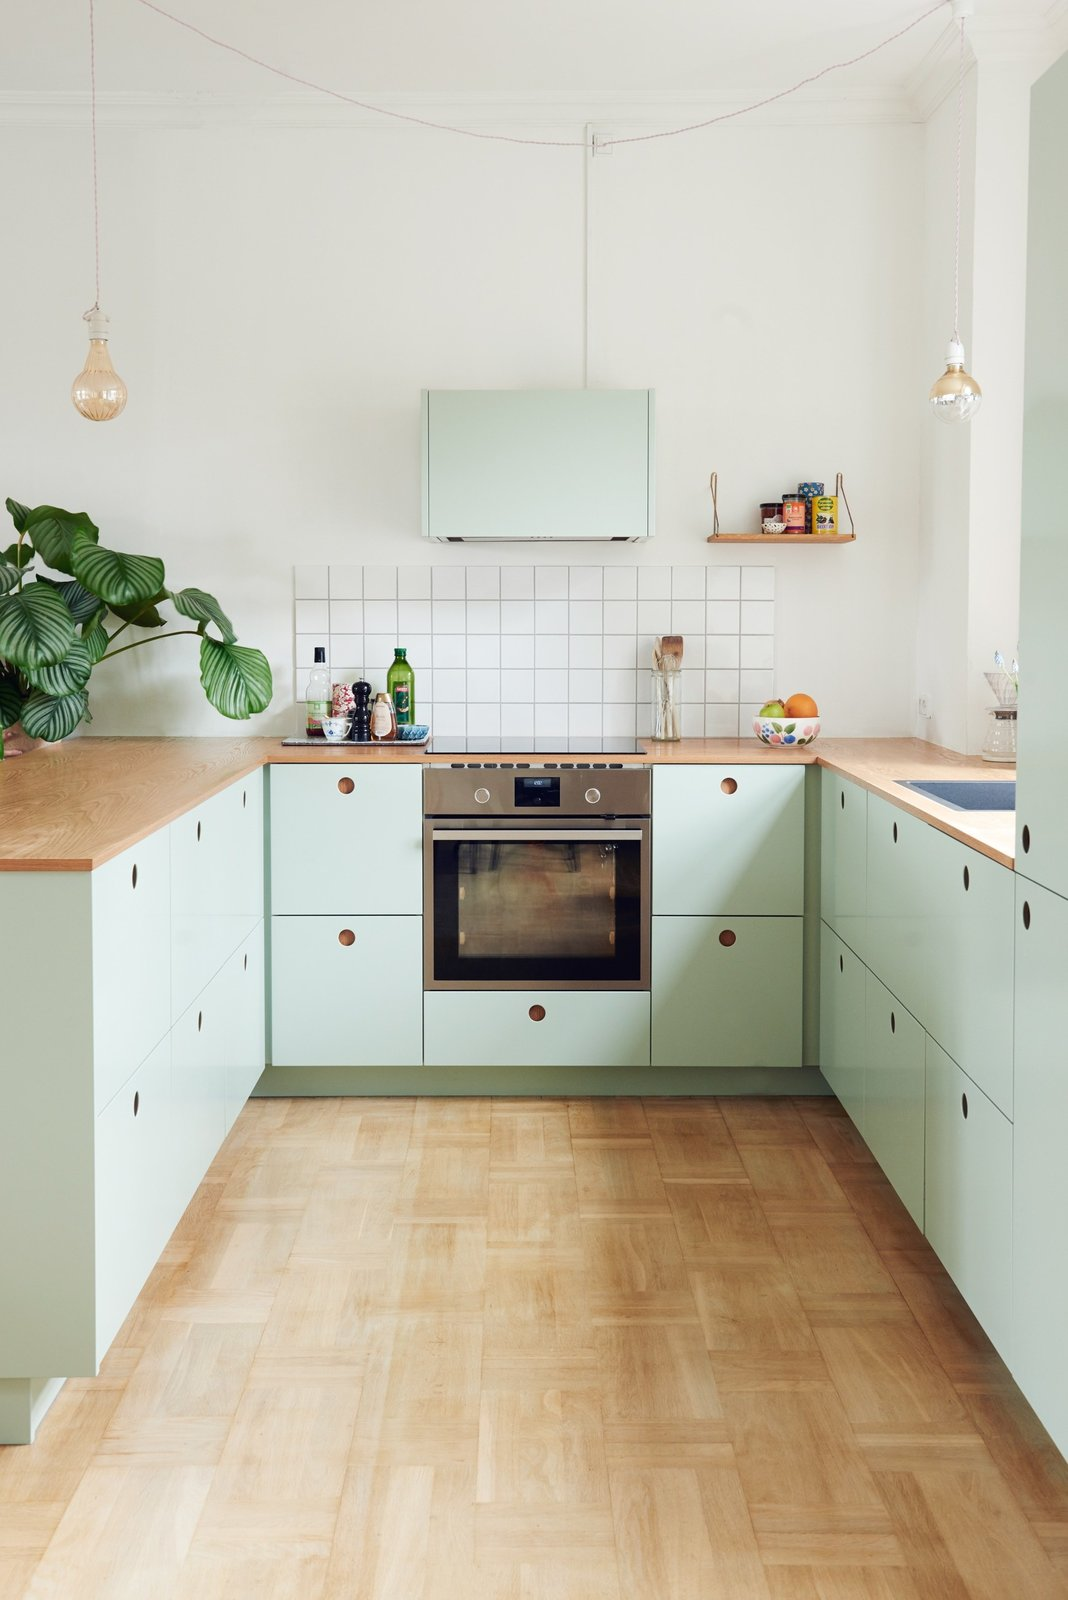 Danish blogger, Tikkie Elsøe, chose mint green Tagged: Kitchen, Wood Counter, Light Hardwood Floor, Pendant Lighting, Subway Tile Backsplashe, Wall Oven, Range Hood, and Drop In Sink.  Photo 4 of 9 in Modern Kitchen Upgrade Ideas From a Danish Design Firm That's Challenging the Kitchen Market